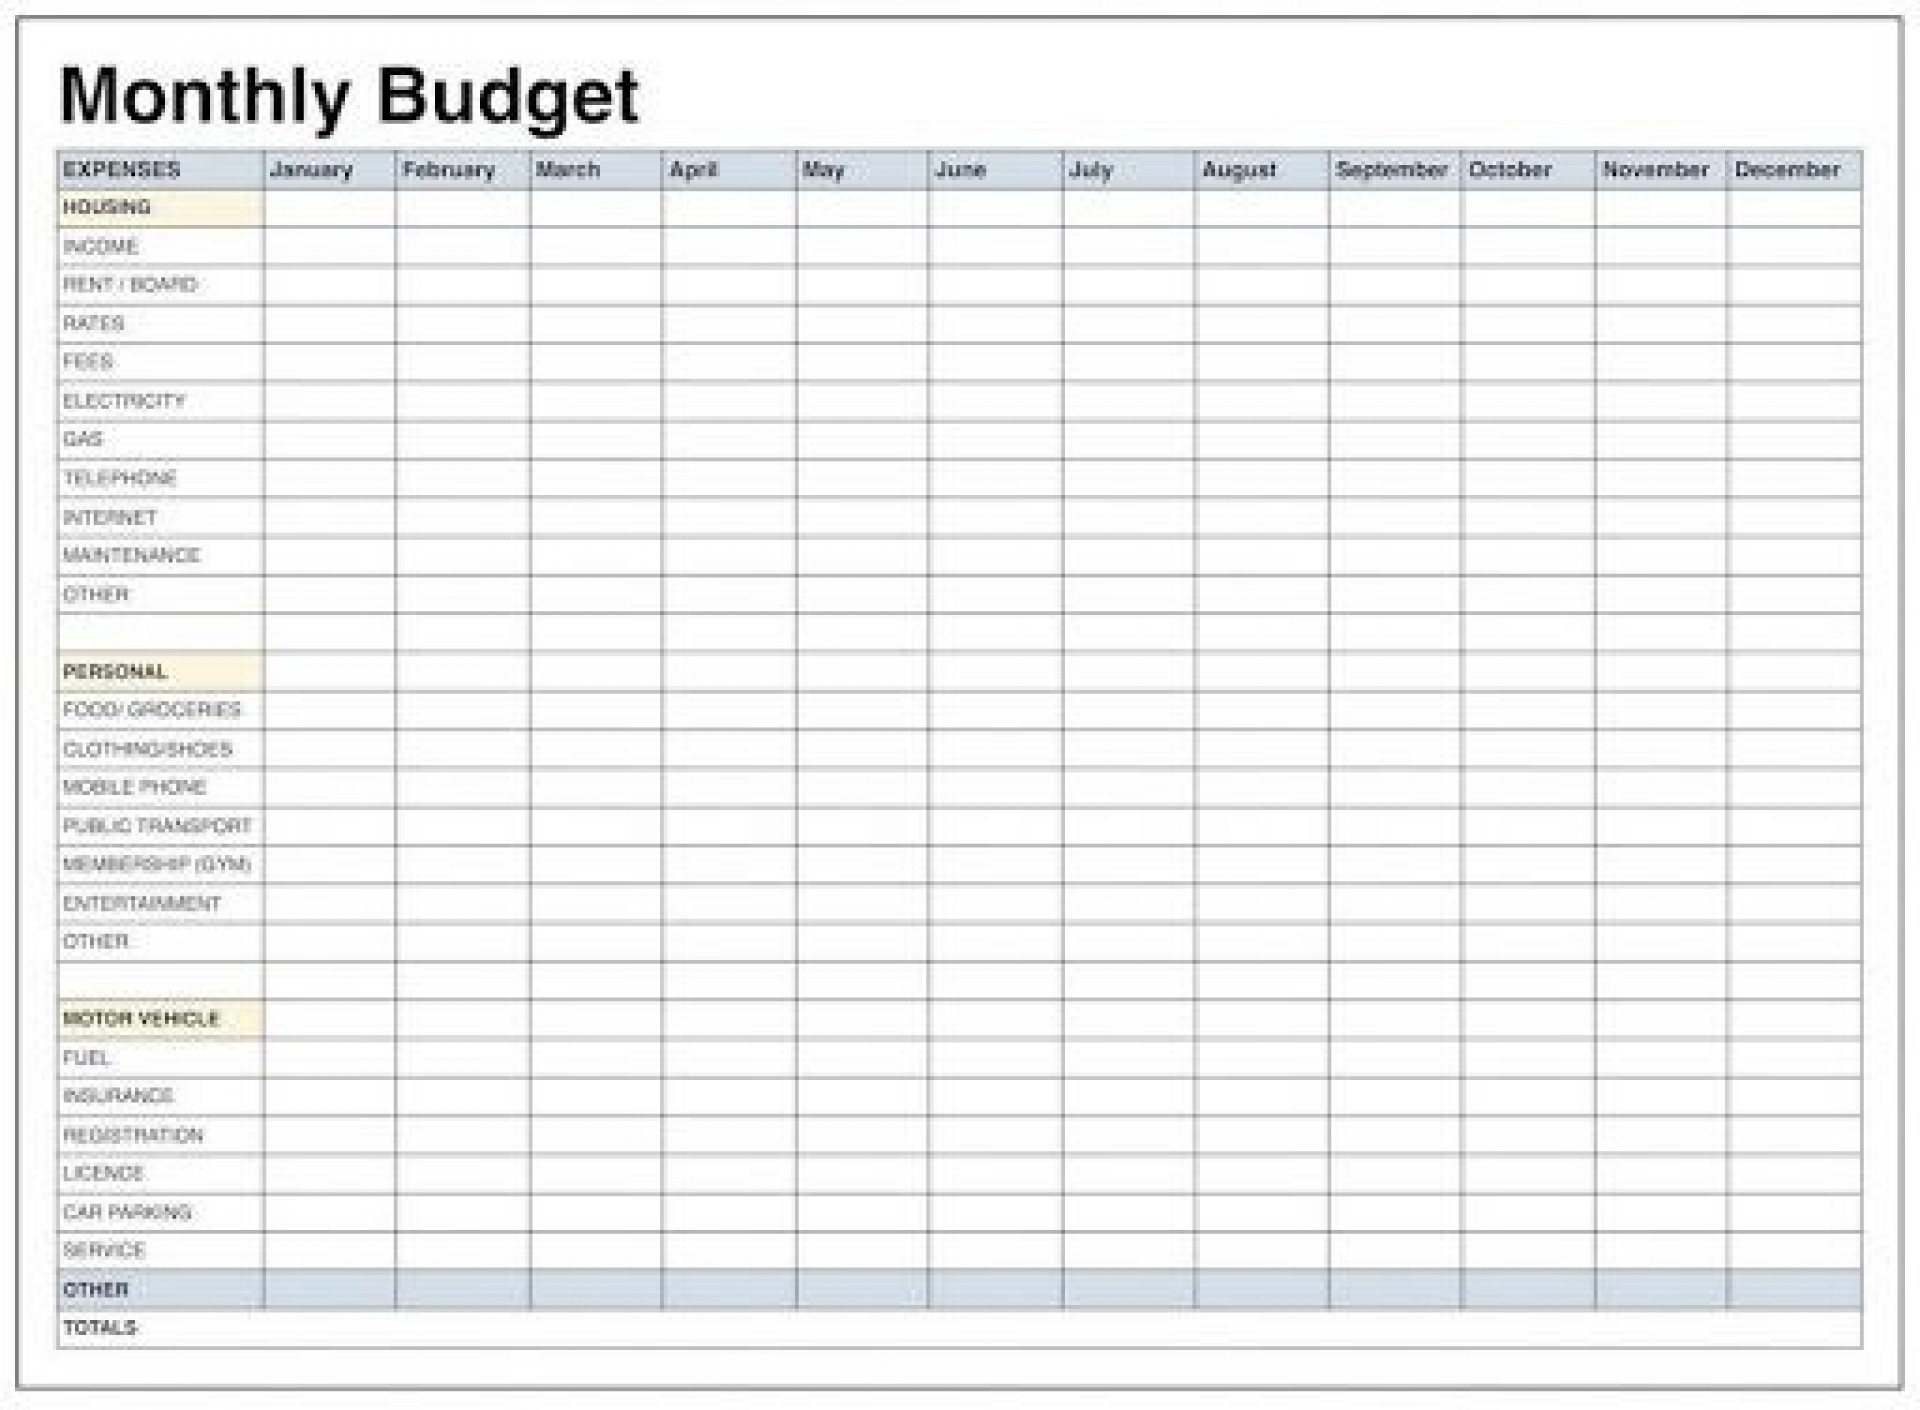 010 Archaicawful Monthly Household Budget Template Free Uk Image 1920